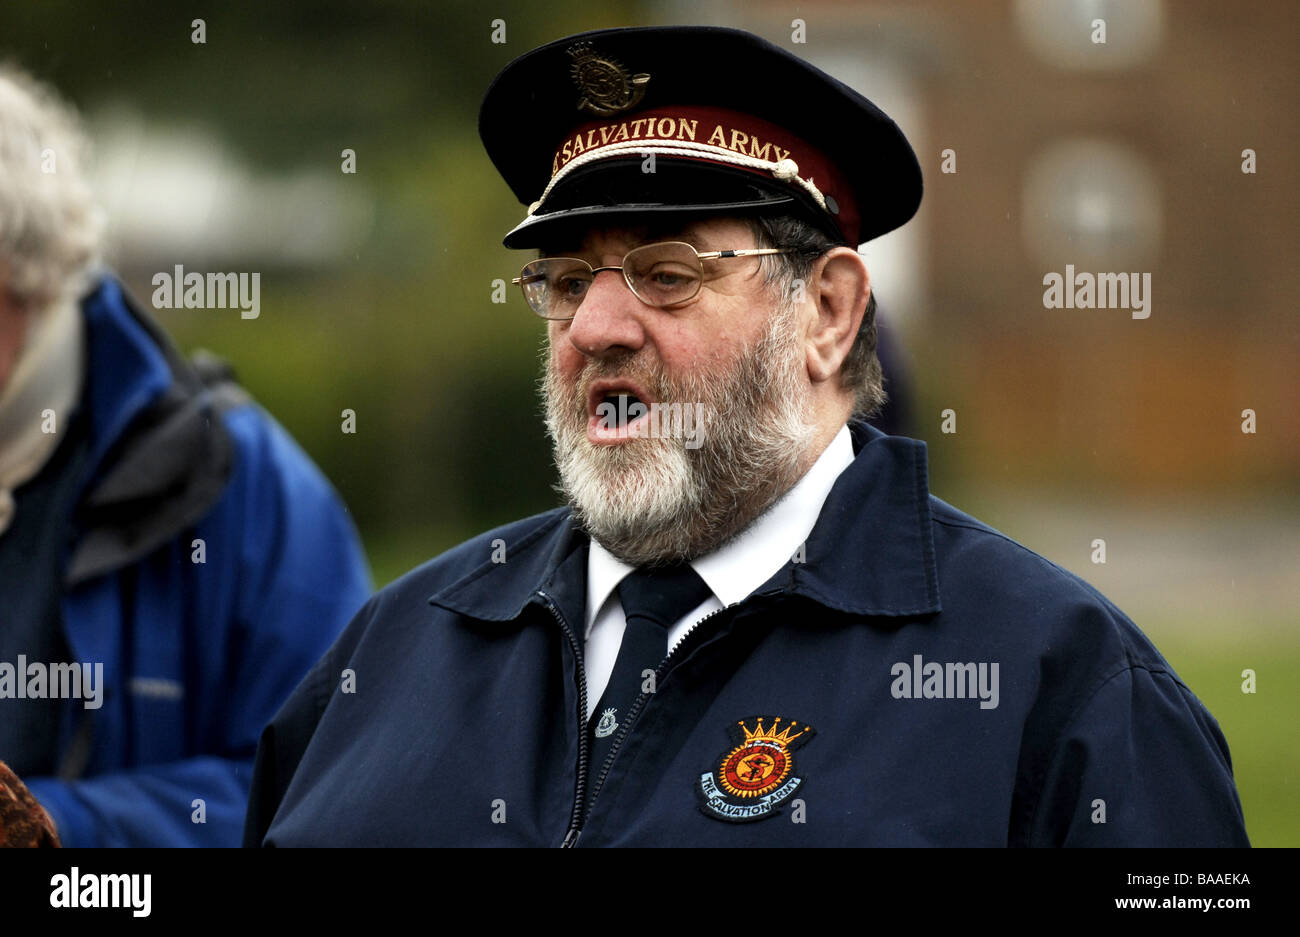 A member of The Salvation Army singing at an outdoor service in Brghton UK - Stock Image